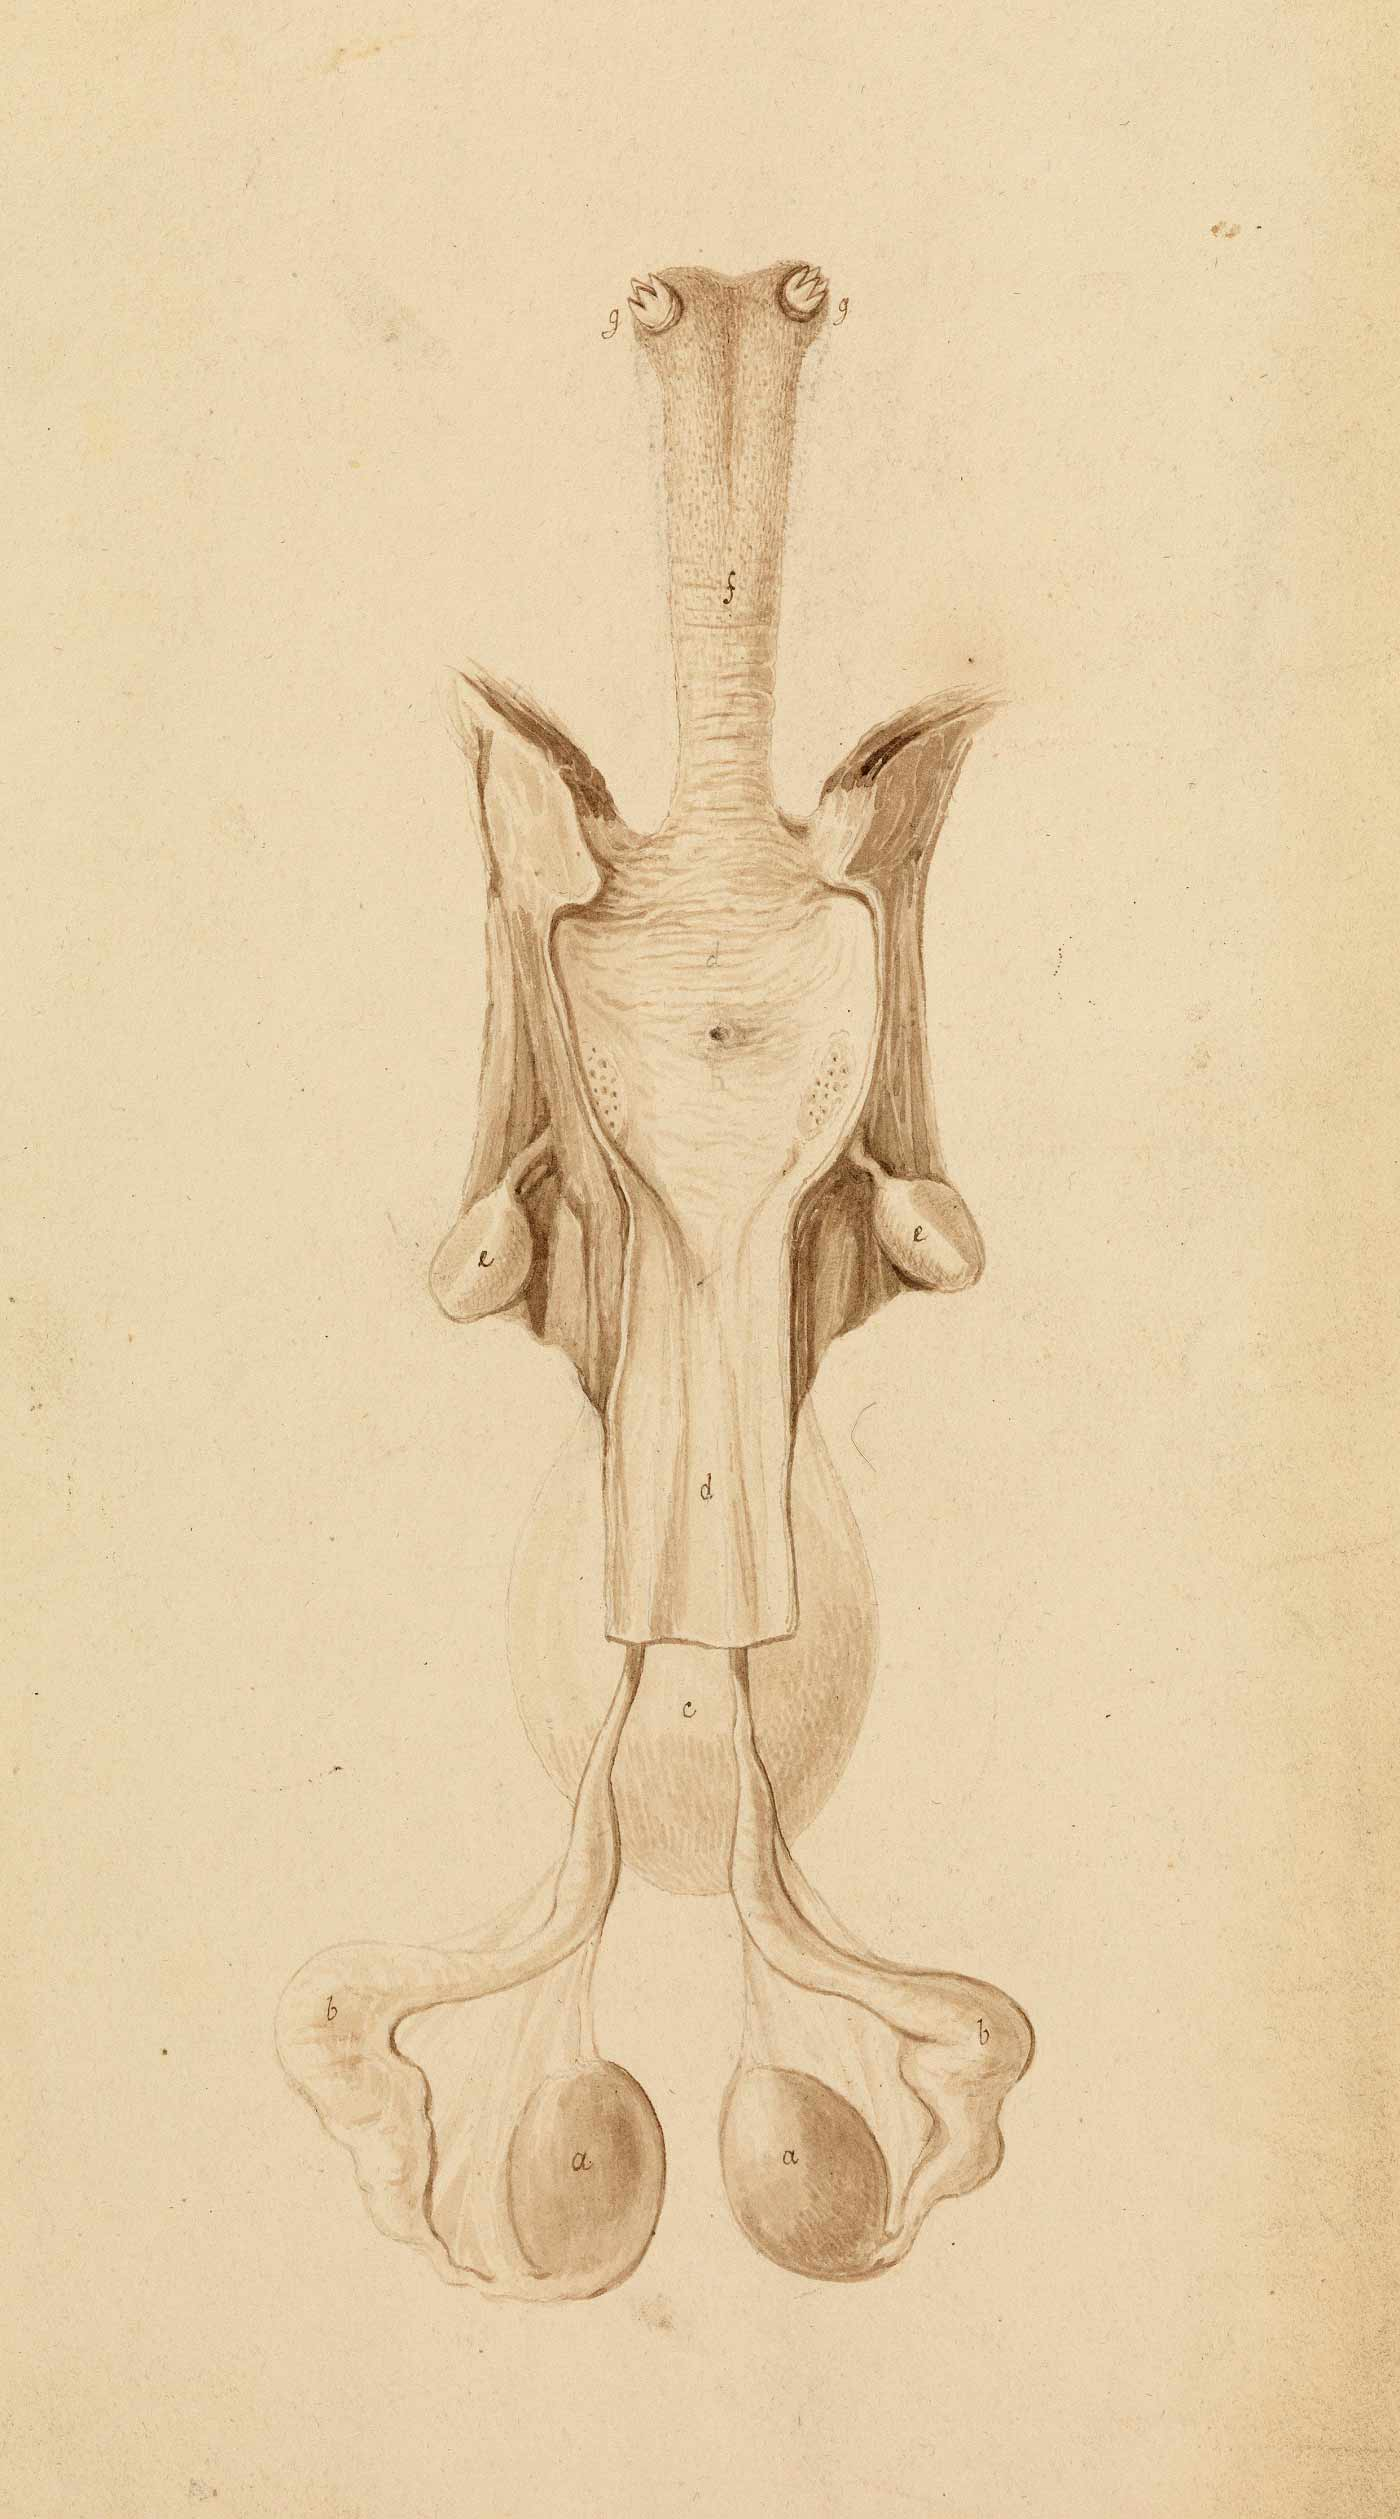 A drawing of a platypus' reproductive organs. - click to view larger image